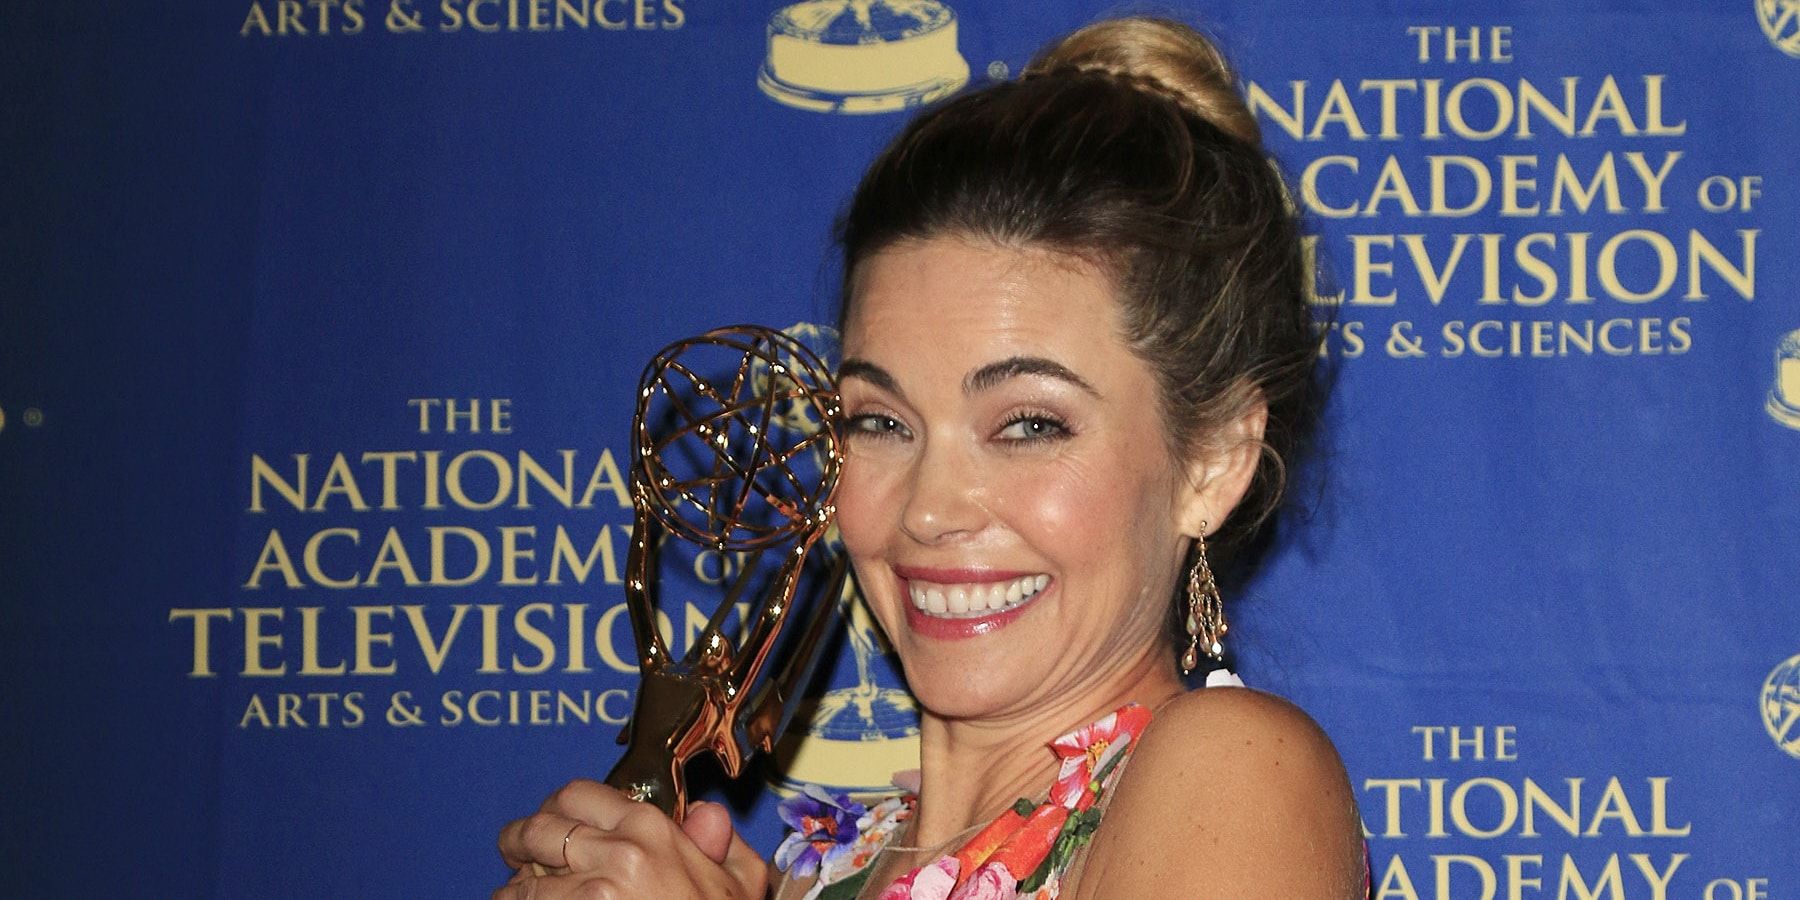 Amelia Heinle born March 17, 1973 (age 45) Amelia Heinle born March 17, 1973 (age 45) new foto